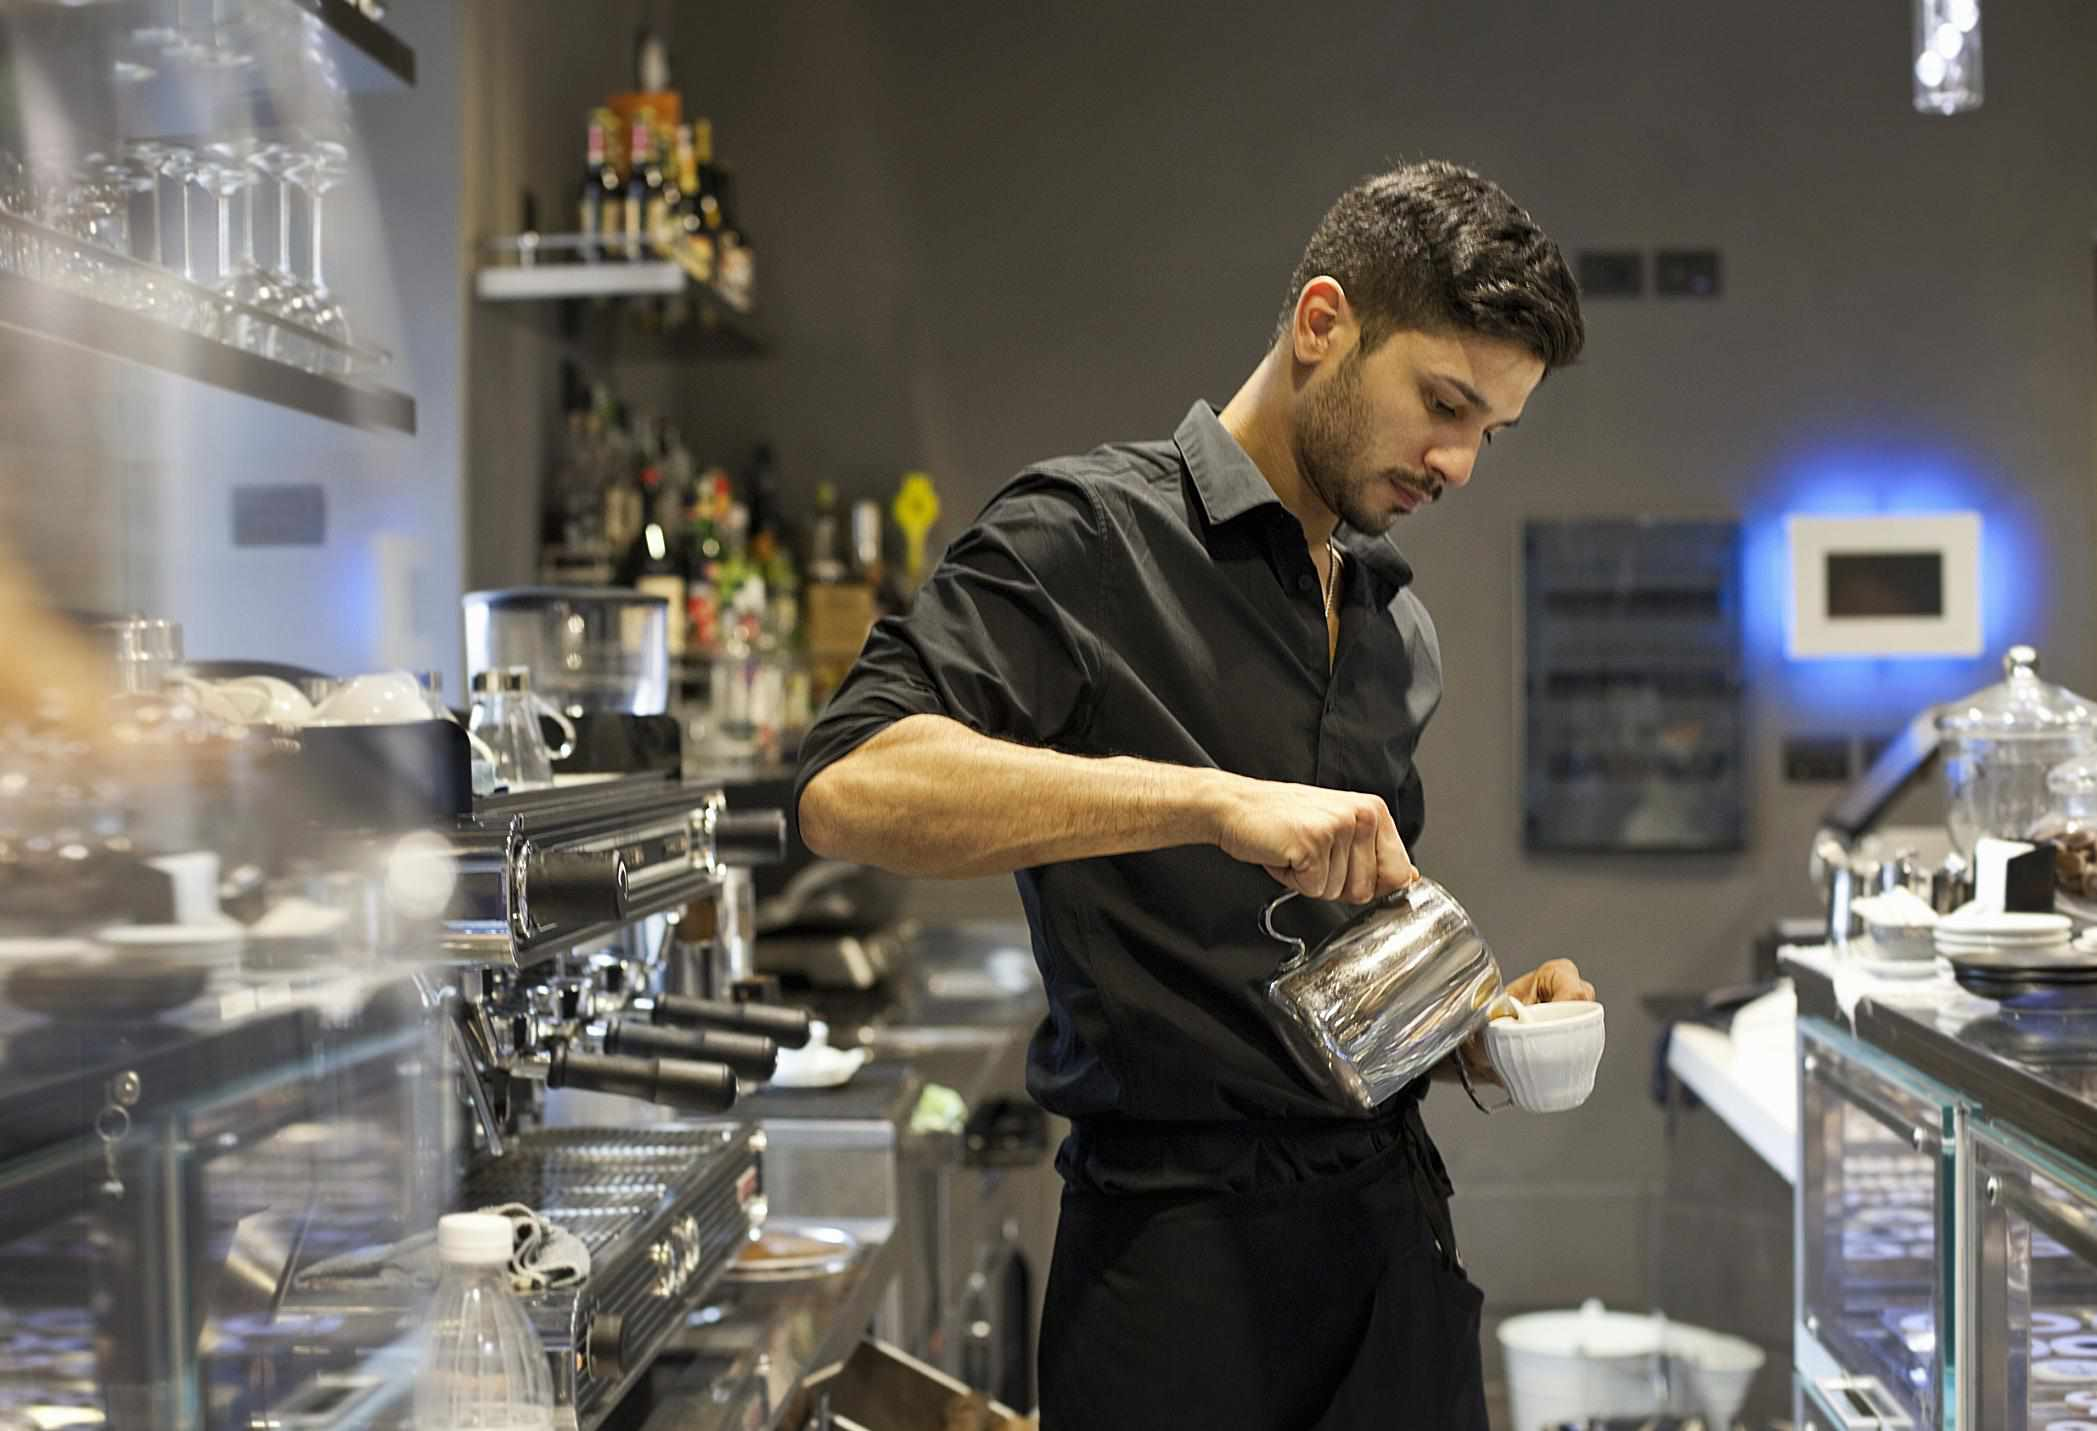 Barista pouring a latte at cafe